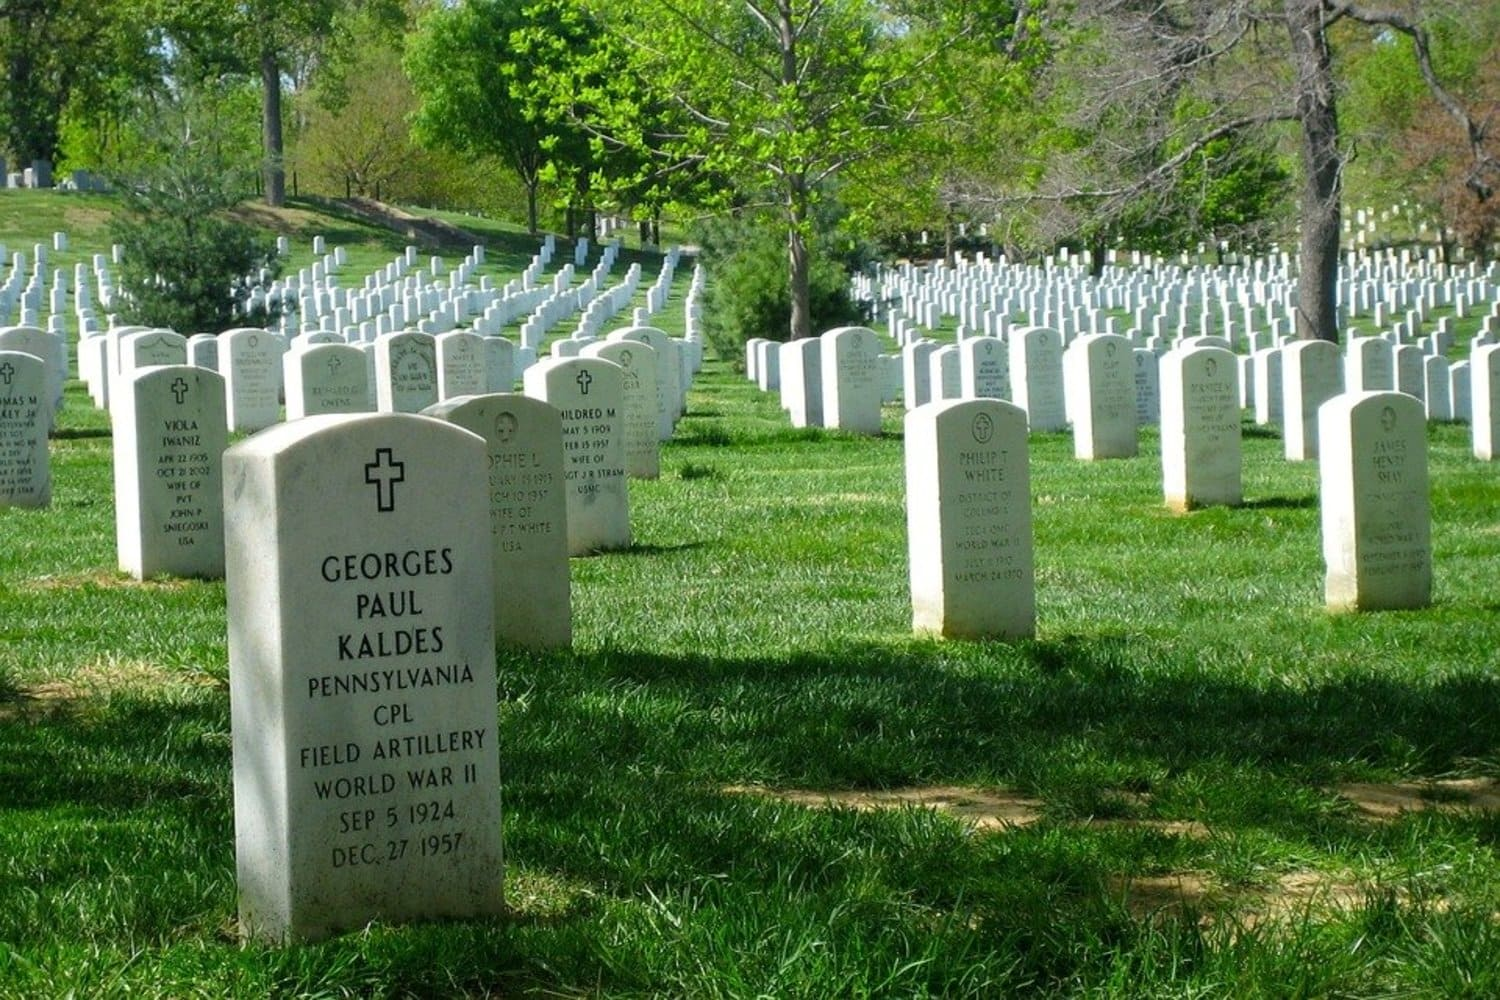 Cementerio de Arlington en Washington